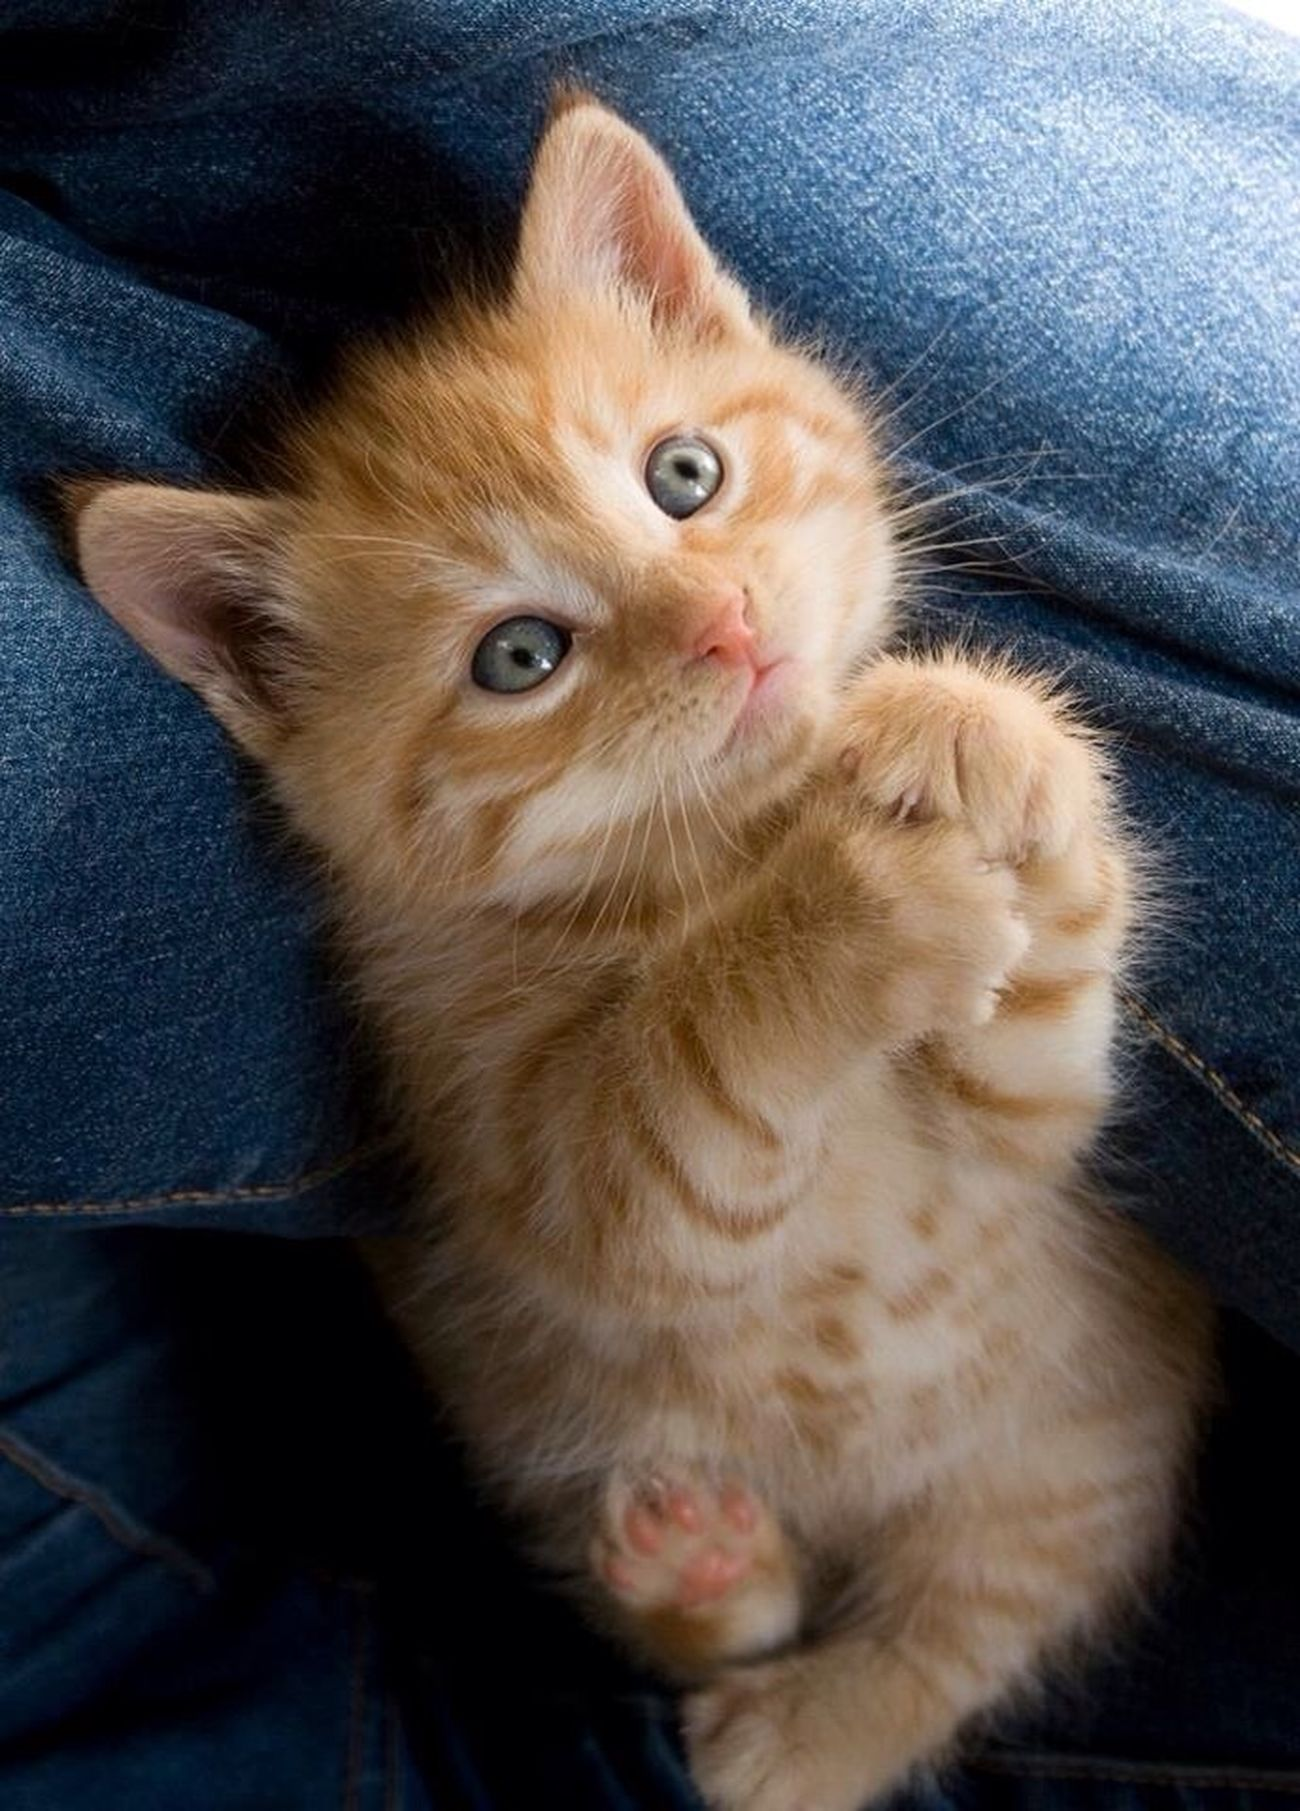 I Cant Get Over How Cute This Kitty Is Lol